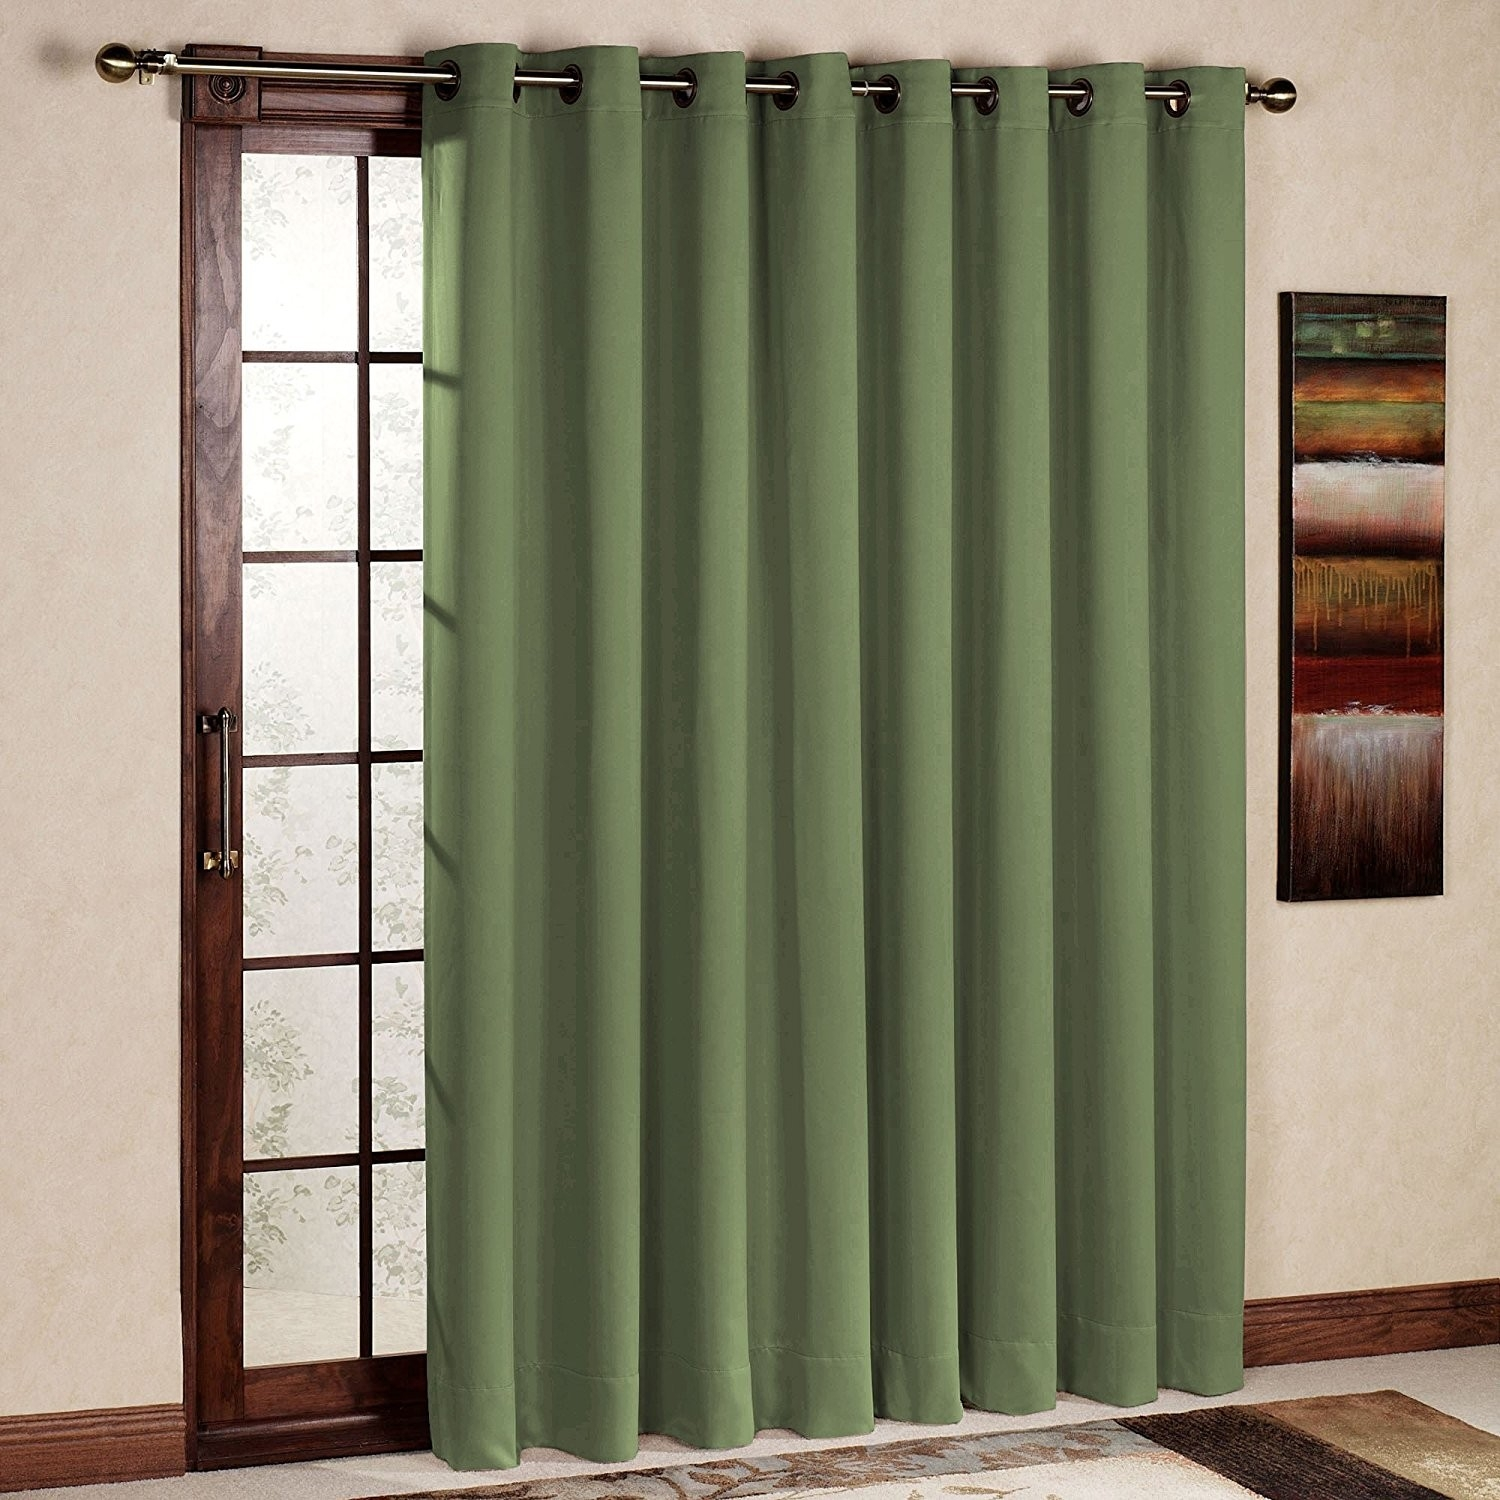 Rhf Thermal Insulated Blackout Patio Door Curtain Panel Sliding In Thermal Door Curtain (View 13 of 15)